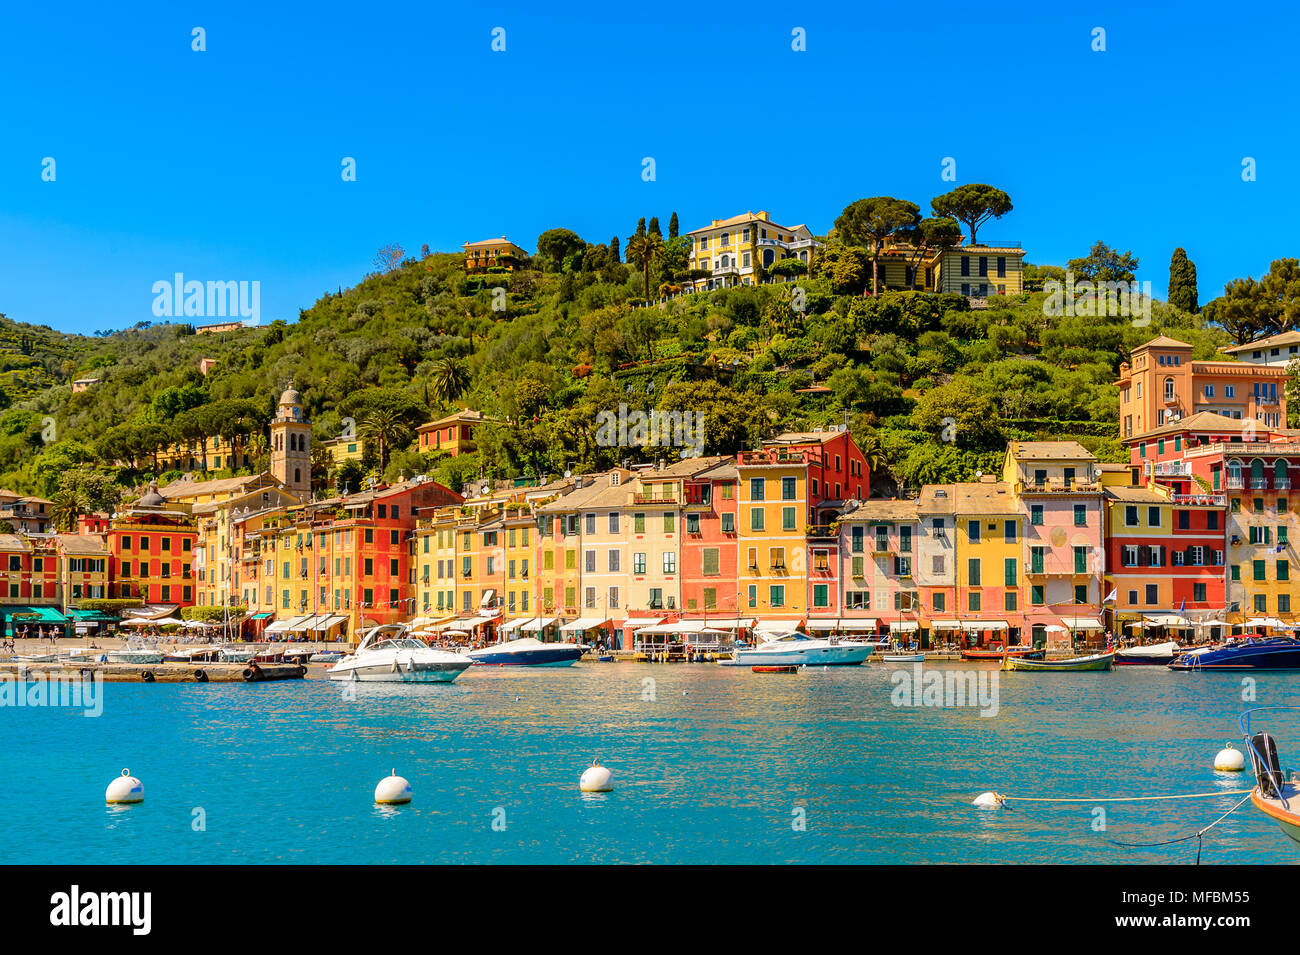 Portofino, is an Italian fishing village, Genoa province, Italy. A vacation resort with a picturesque harbour and with celebrity and artistic visitors - Stock Image